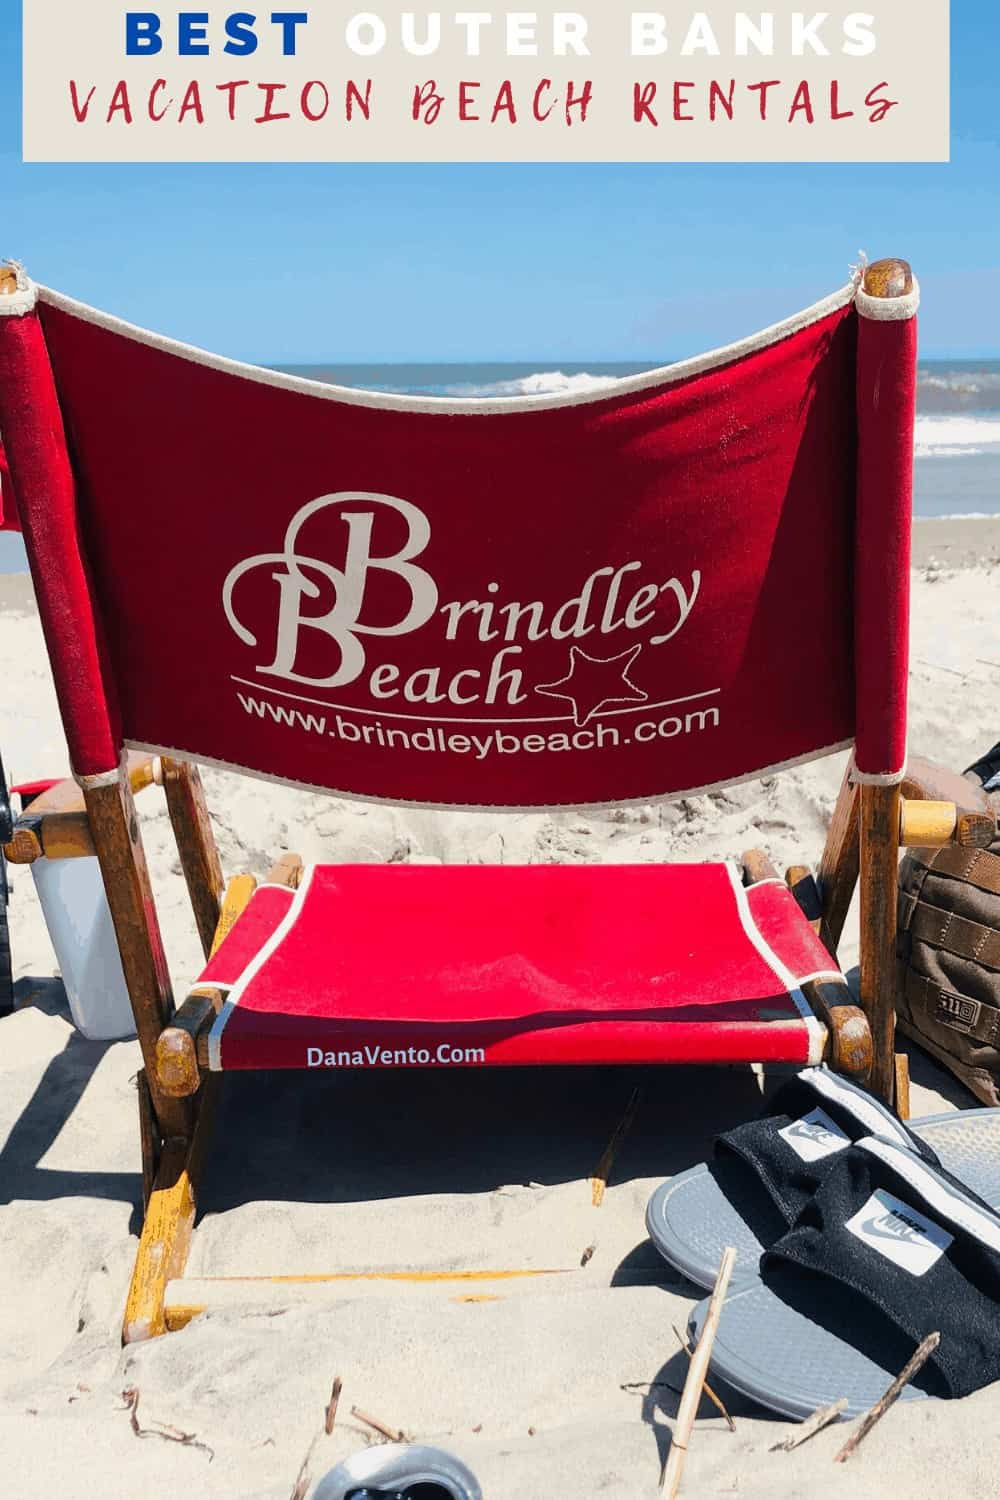 Brindley Beach Vacations Chair on Beach in the sand